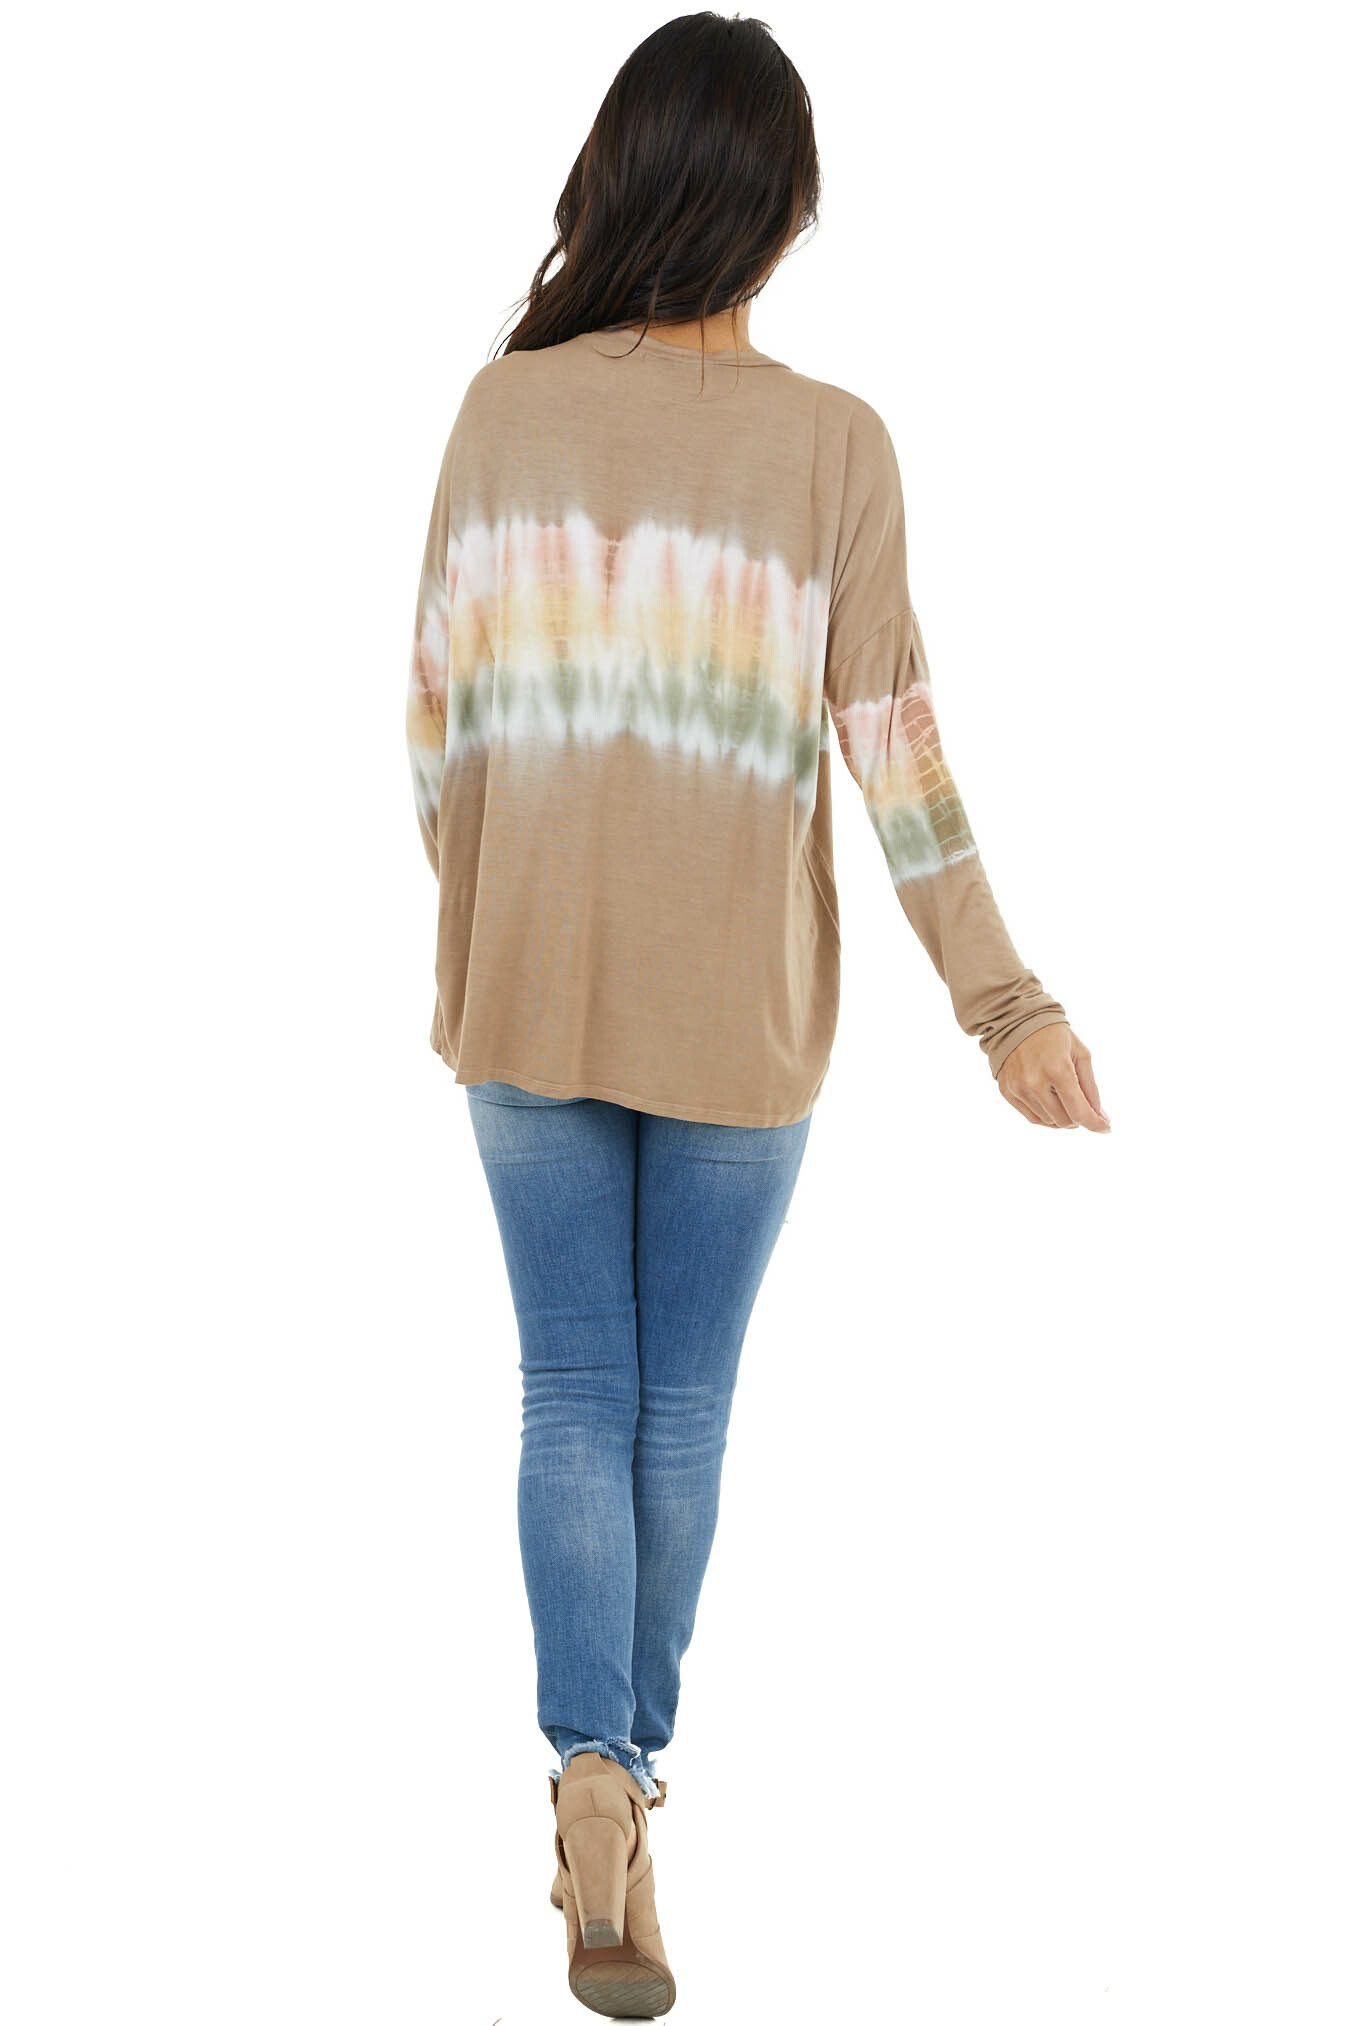 Walnut and Ivory Long Sleeve Top with Tie Dye Detail